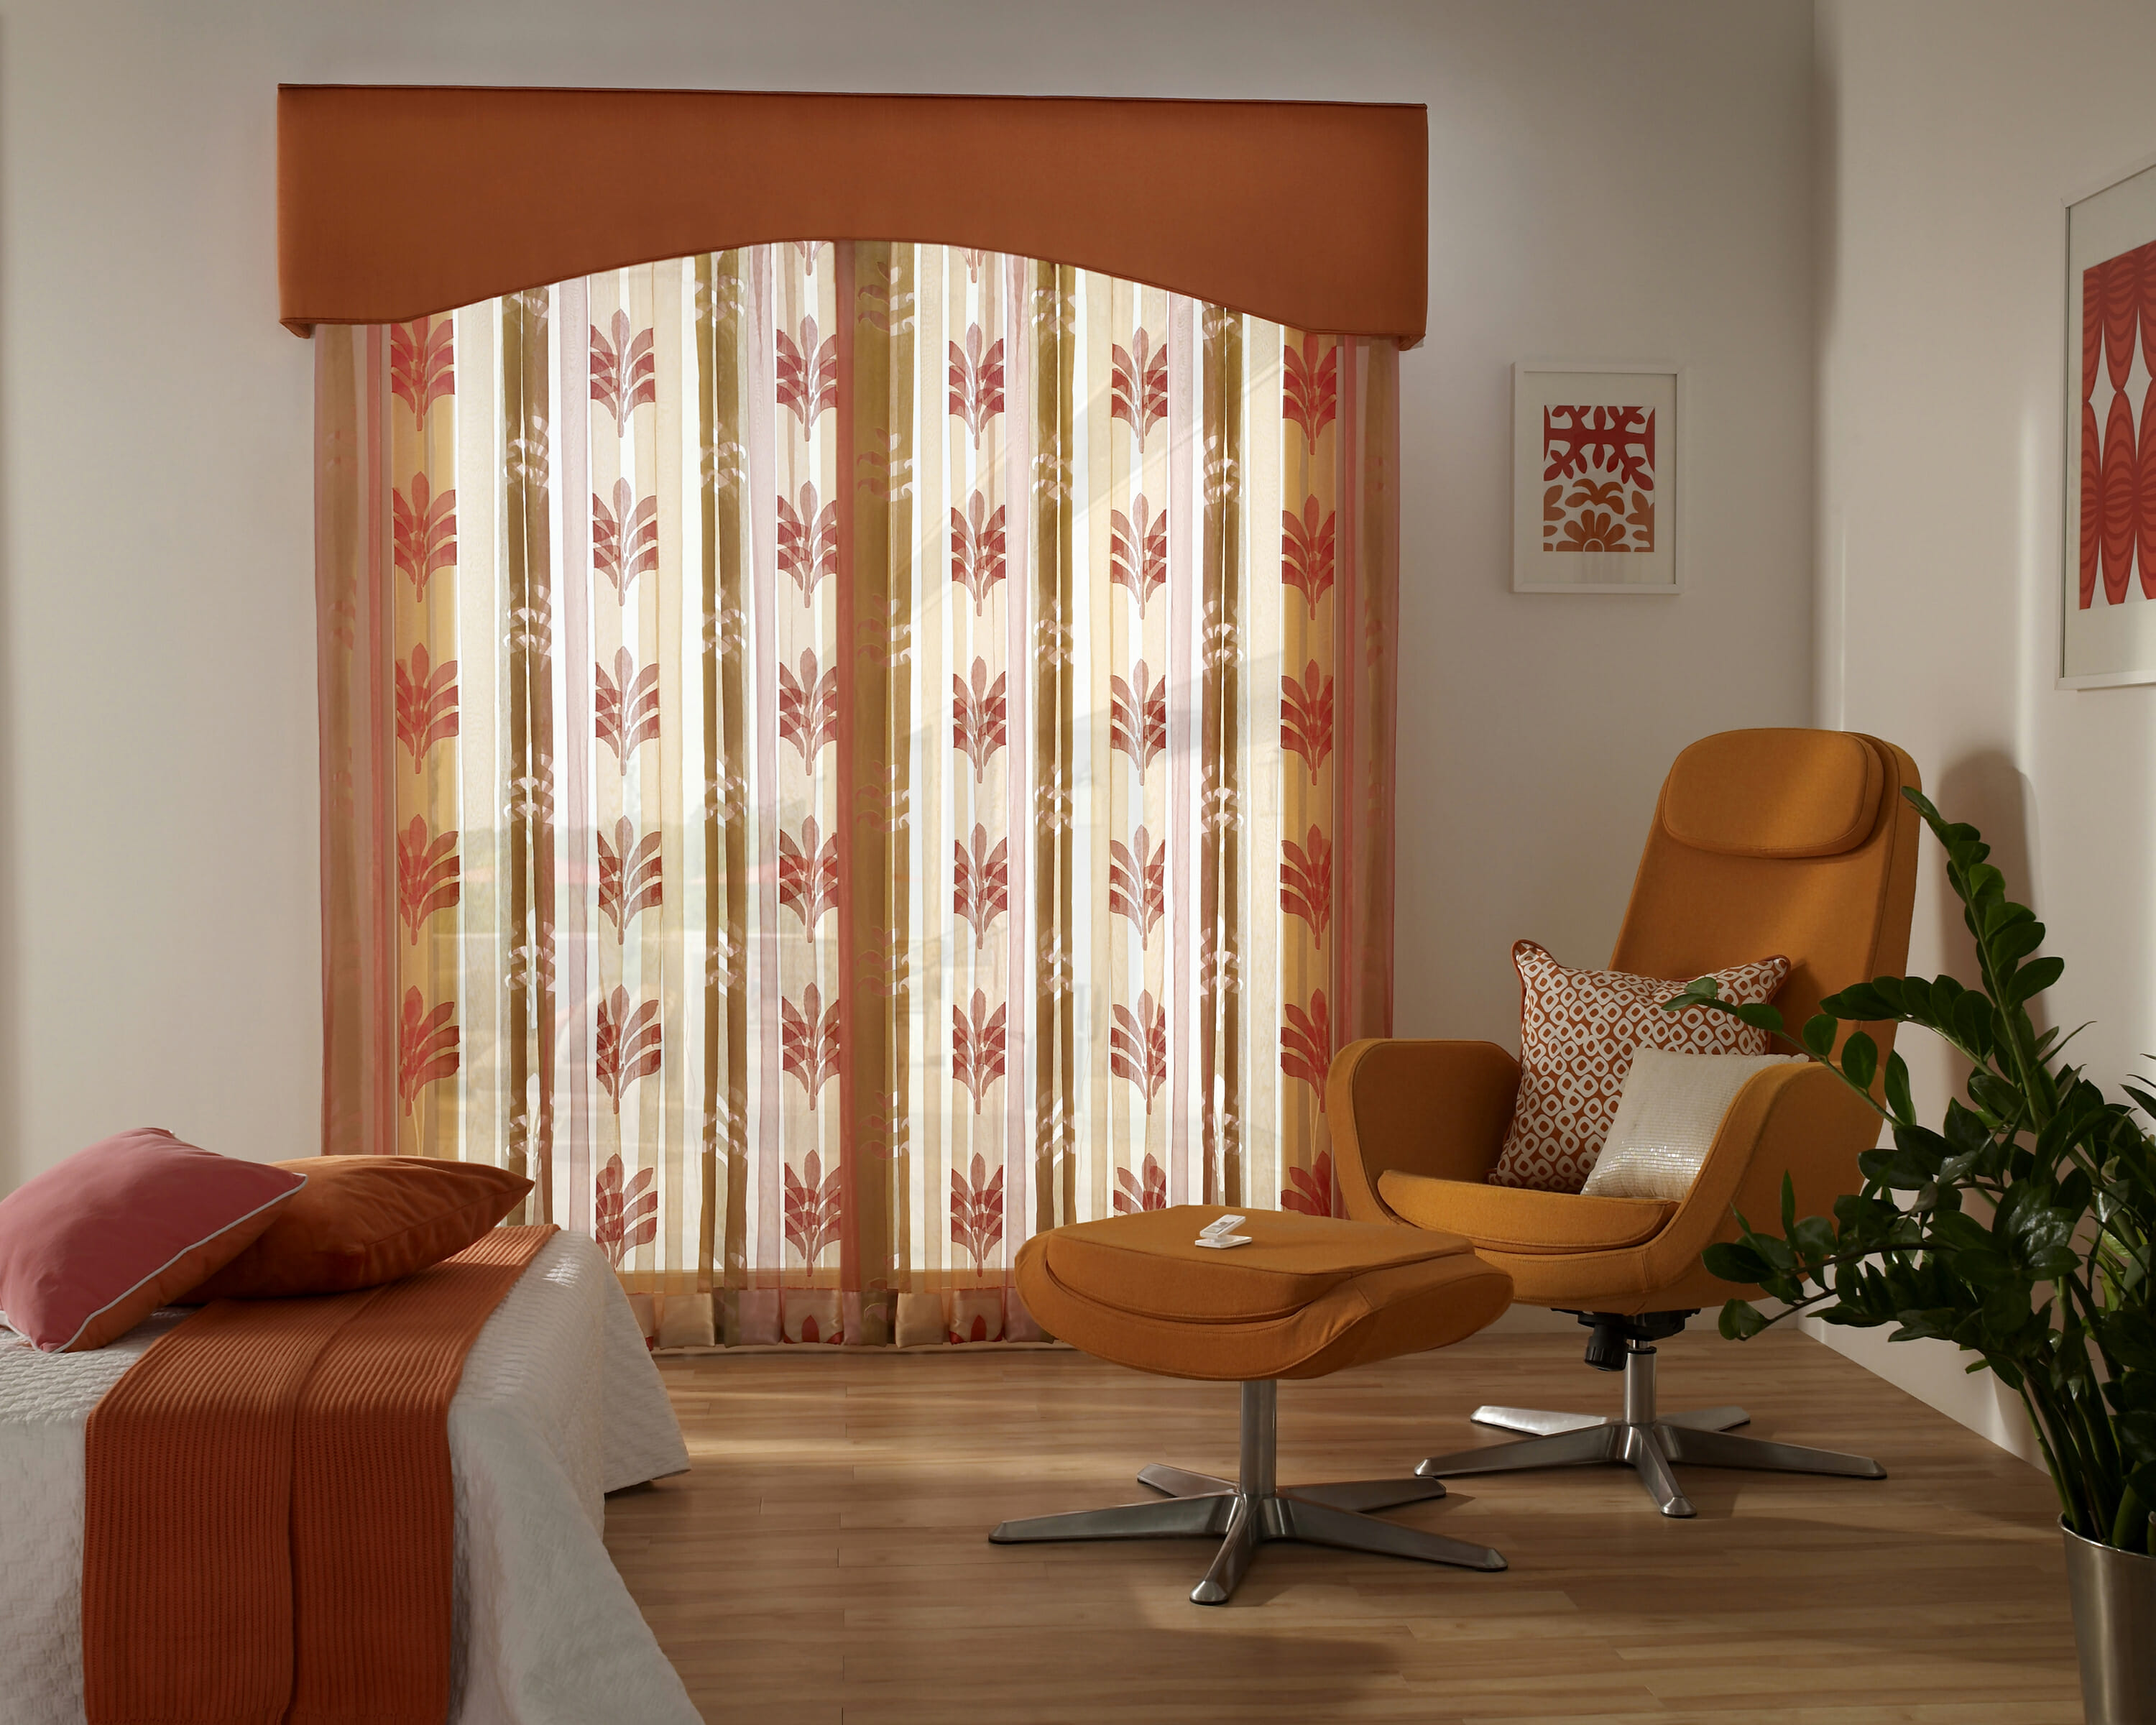 Window treatment ideas for doors 3 blind mice for Window treatment ideas